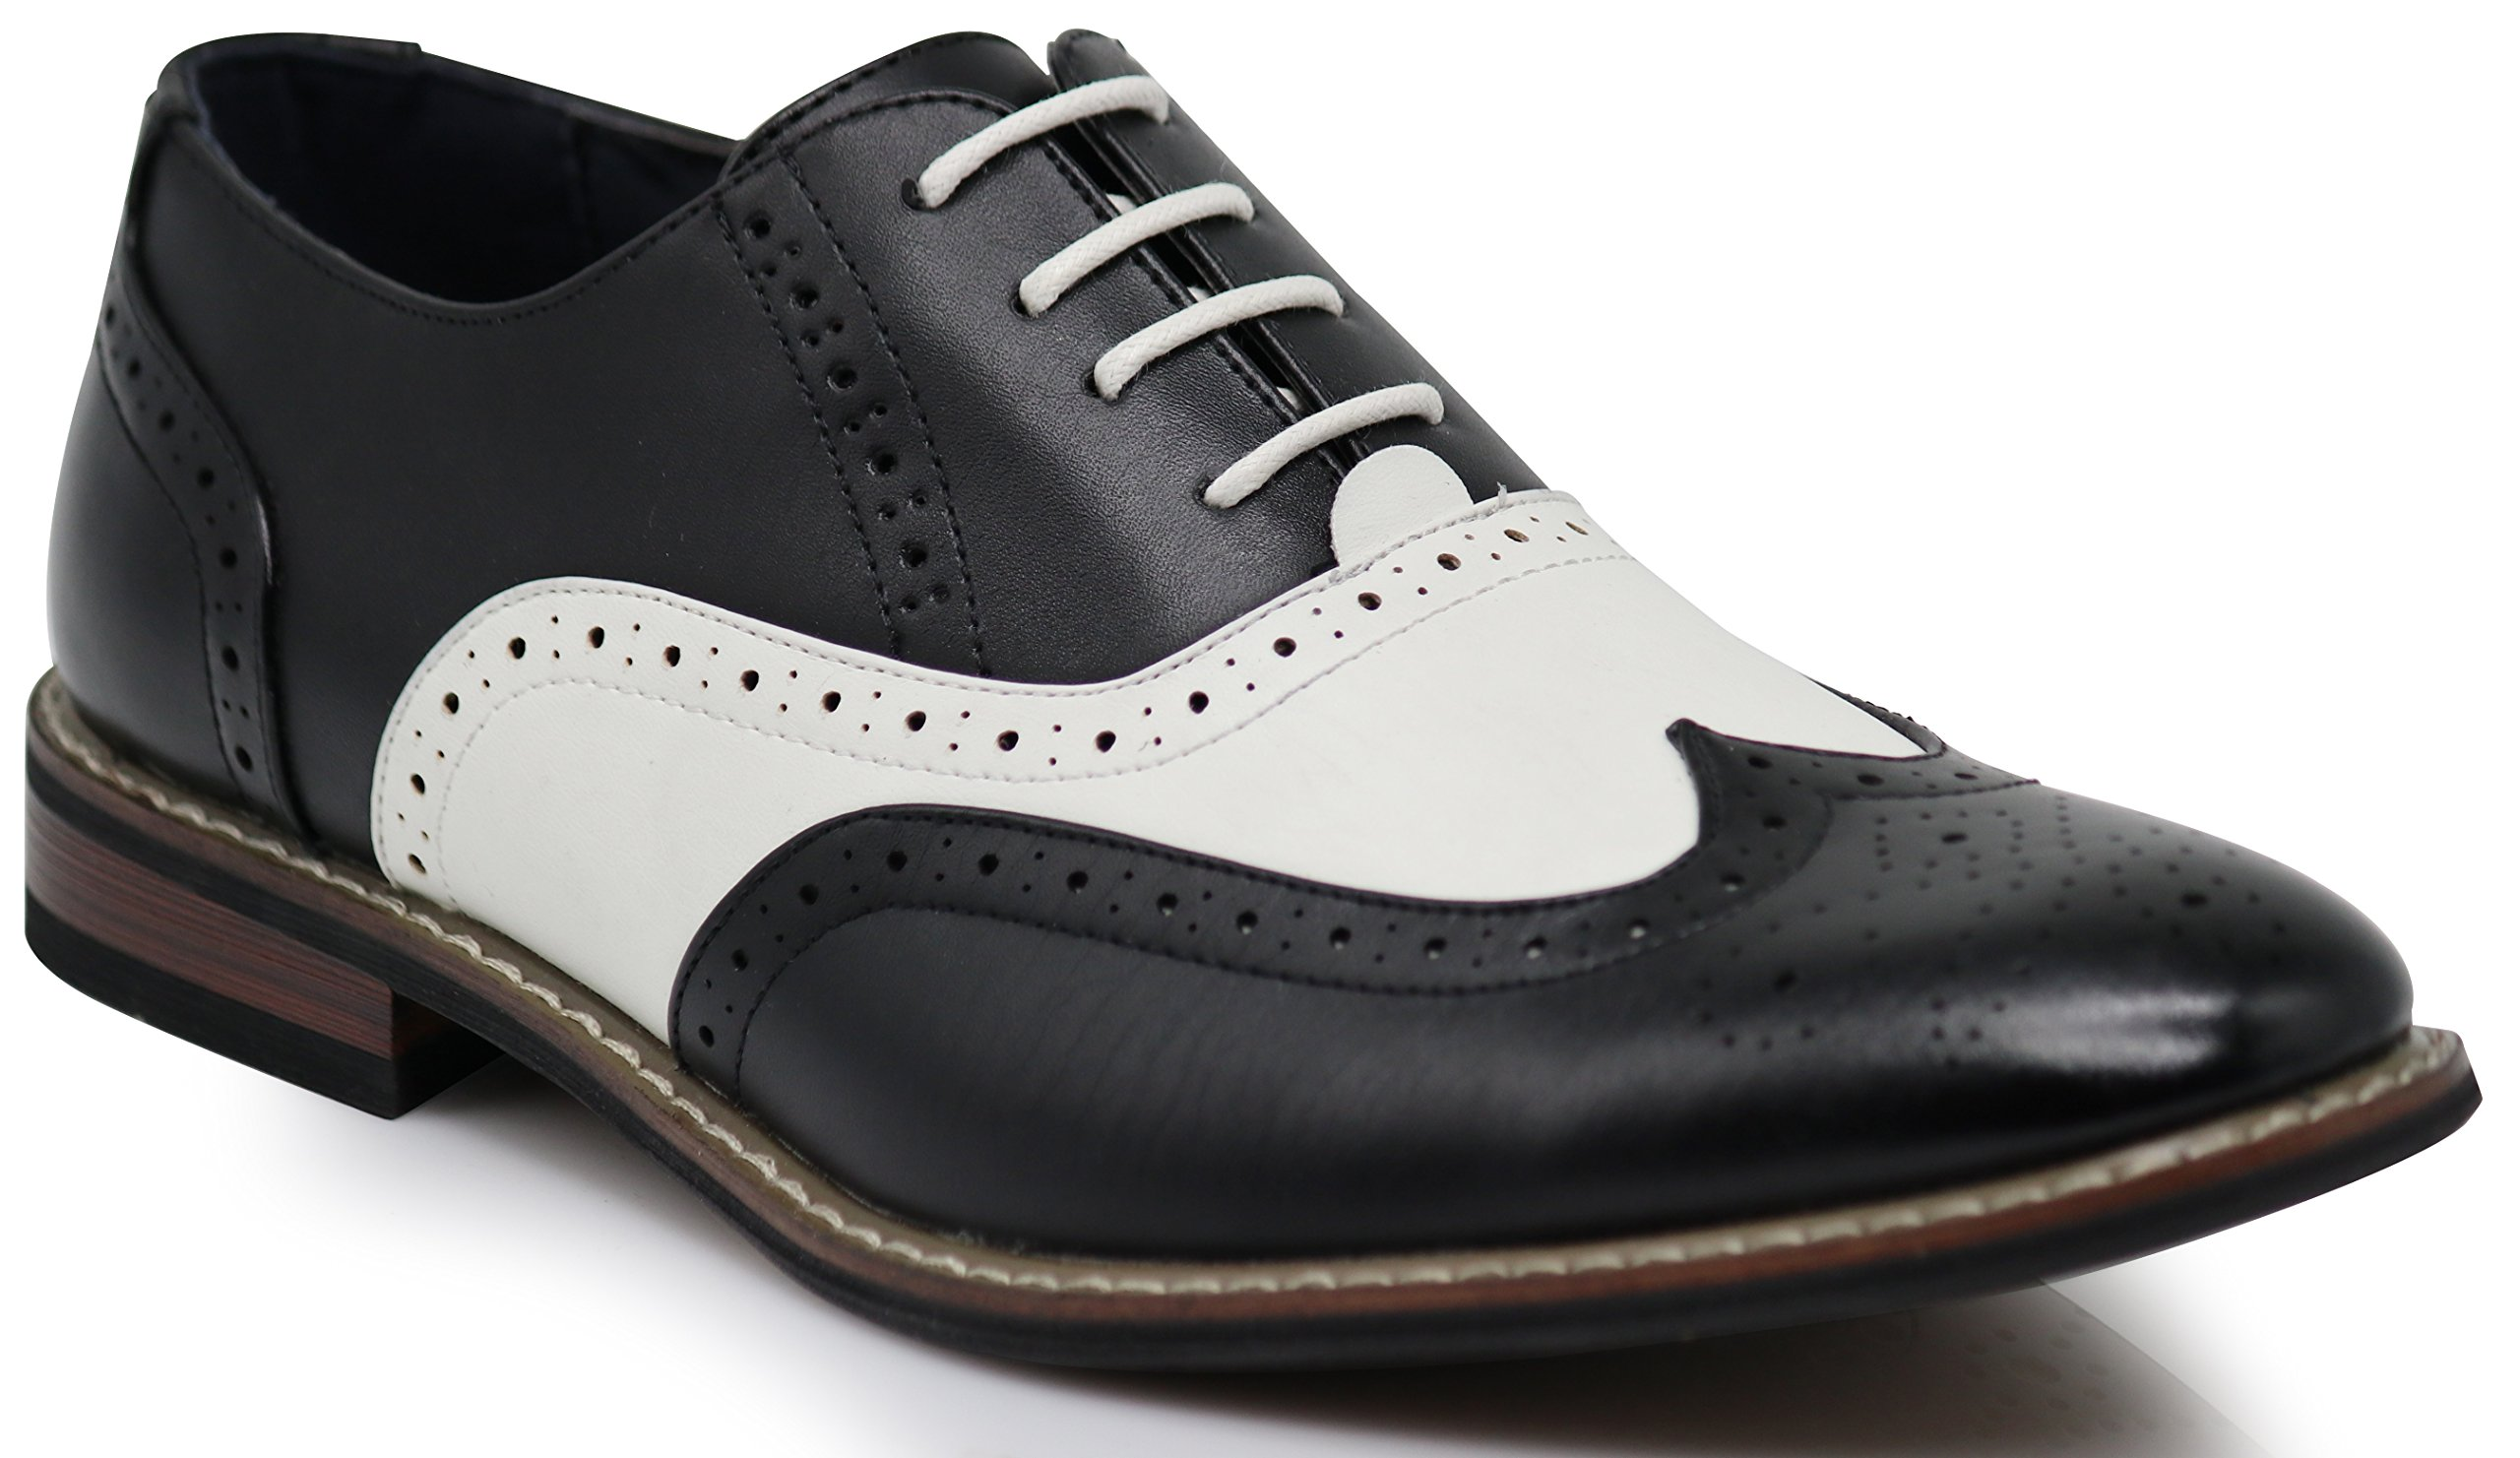 Wood8 Men's Two Tone Wingtips Oxfords Perforated Lace up Dress Shoes (10)